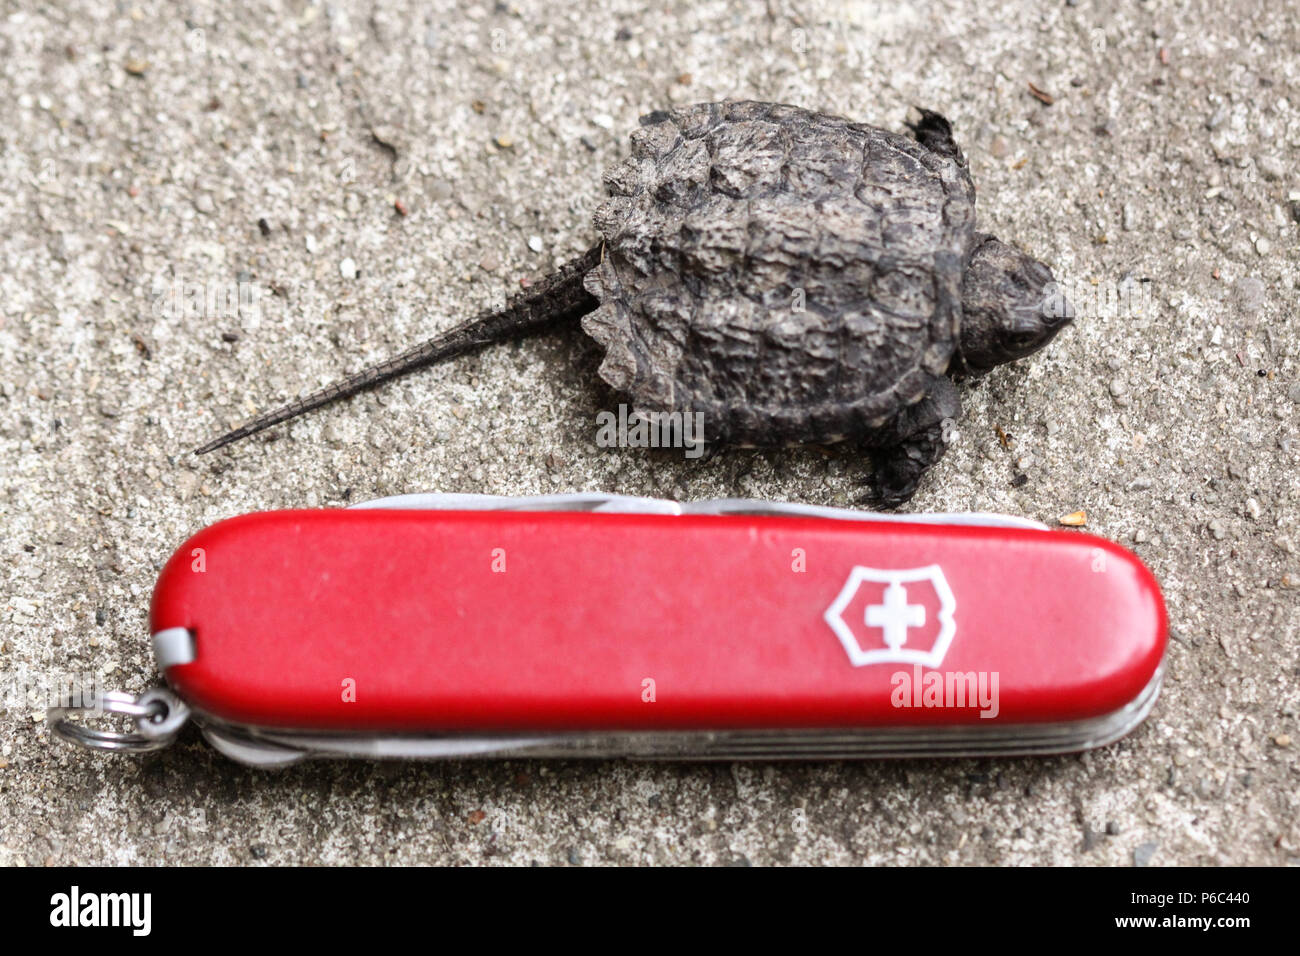 Baby Snapping Turtle - Stock Image